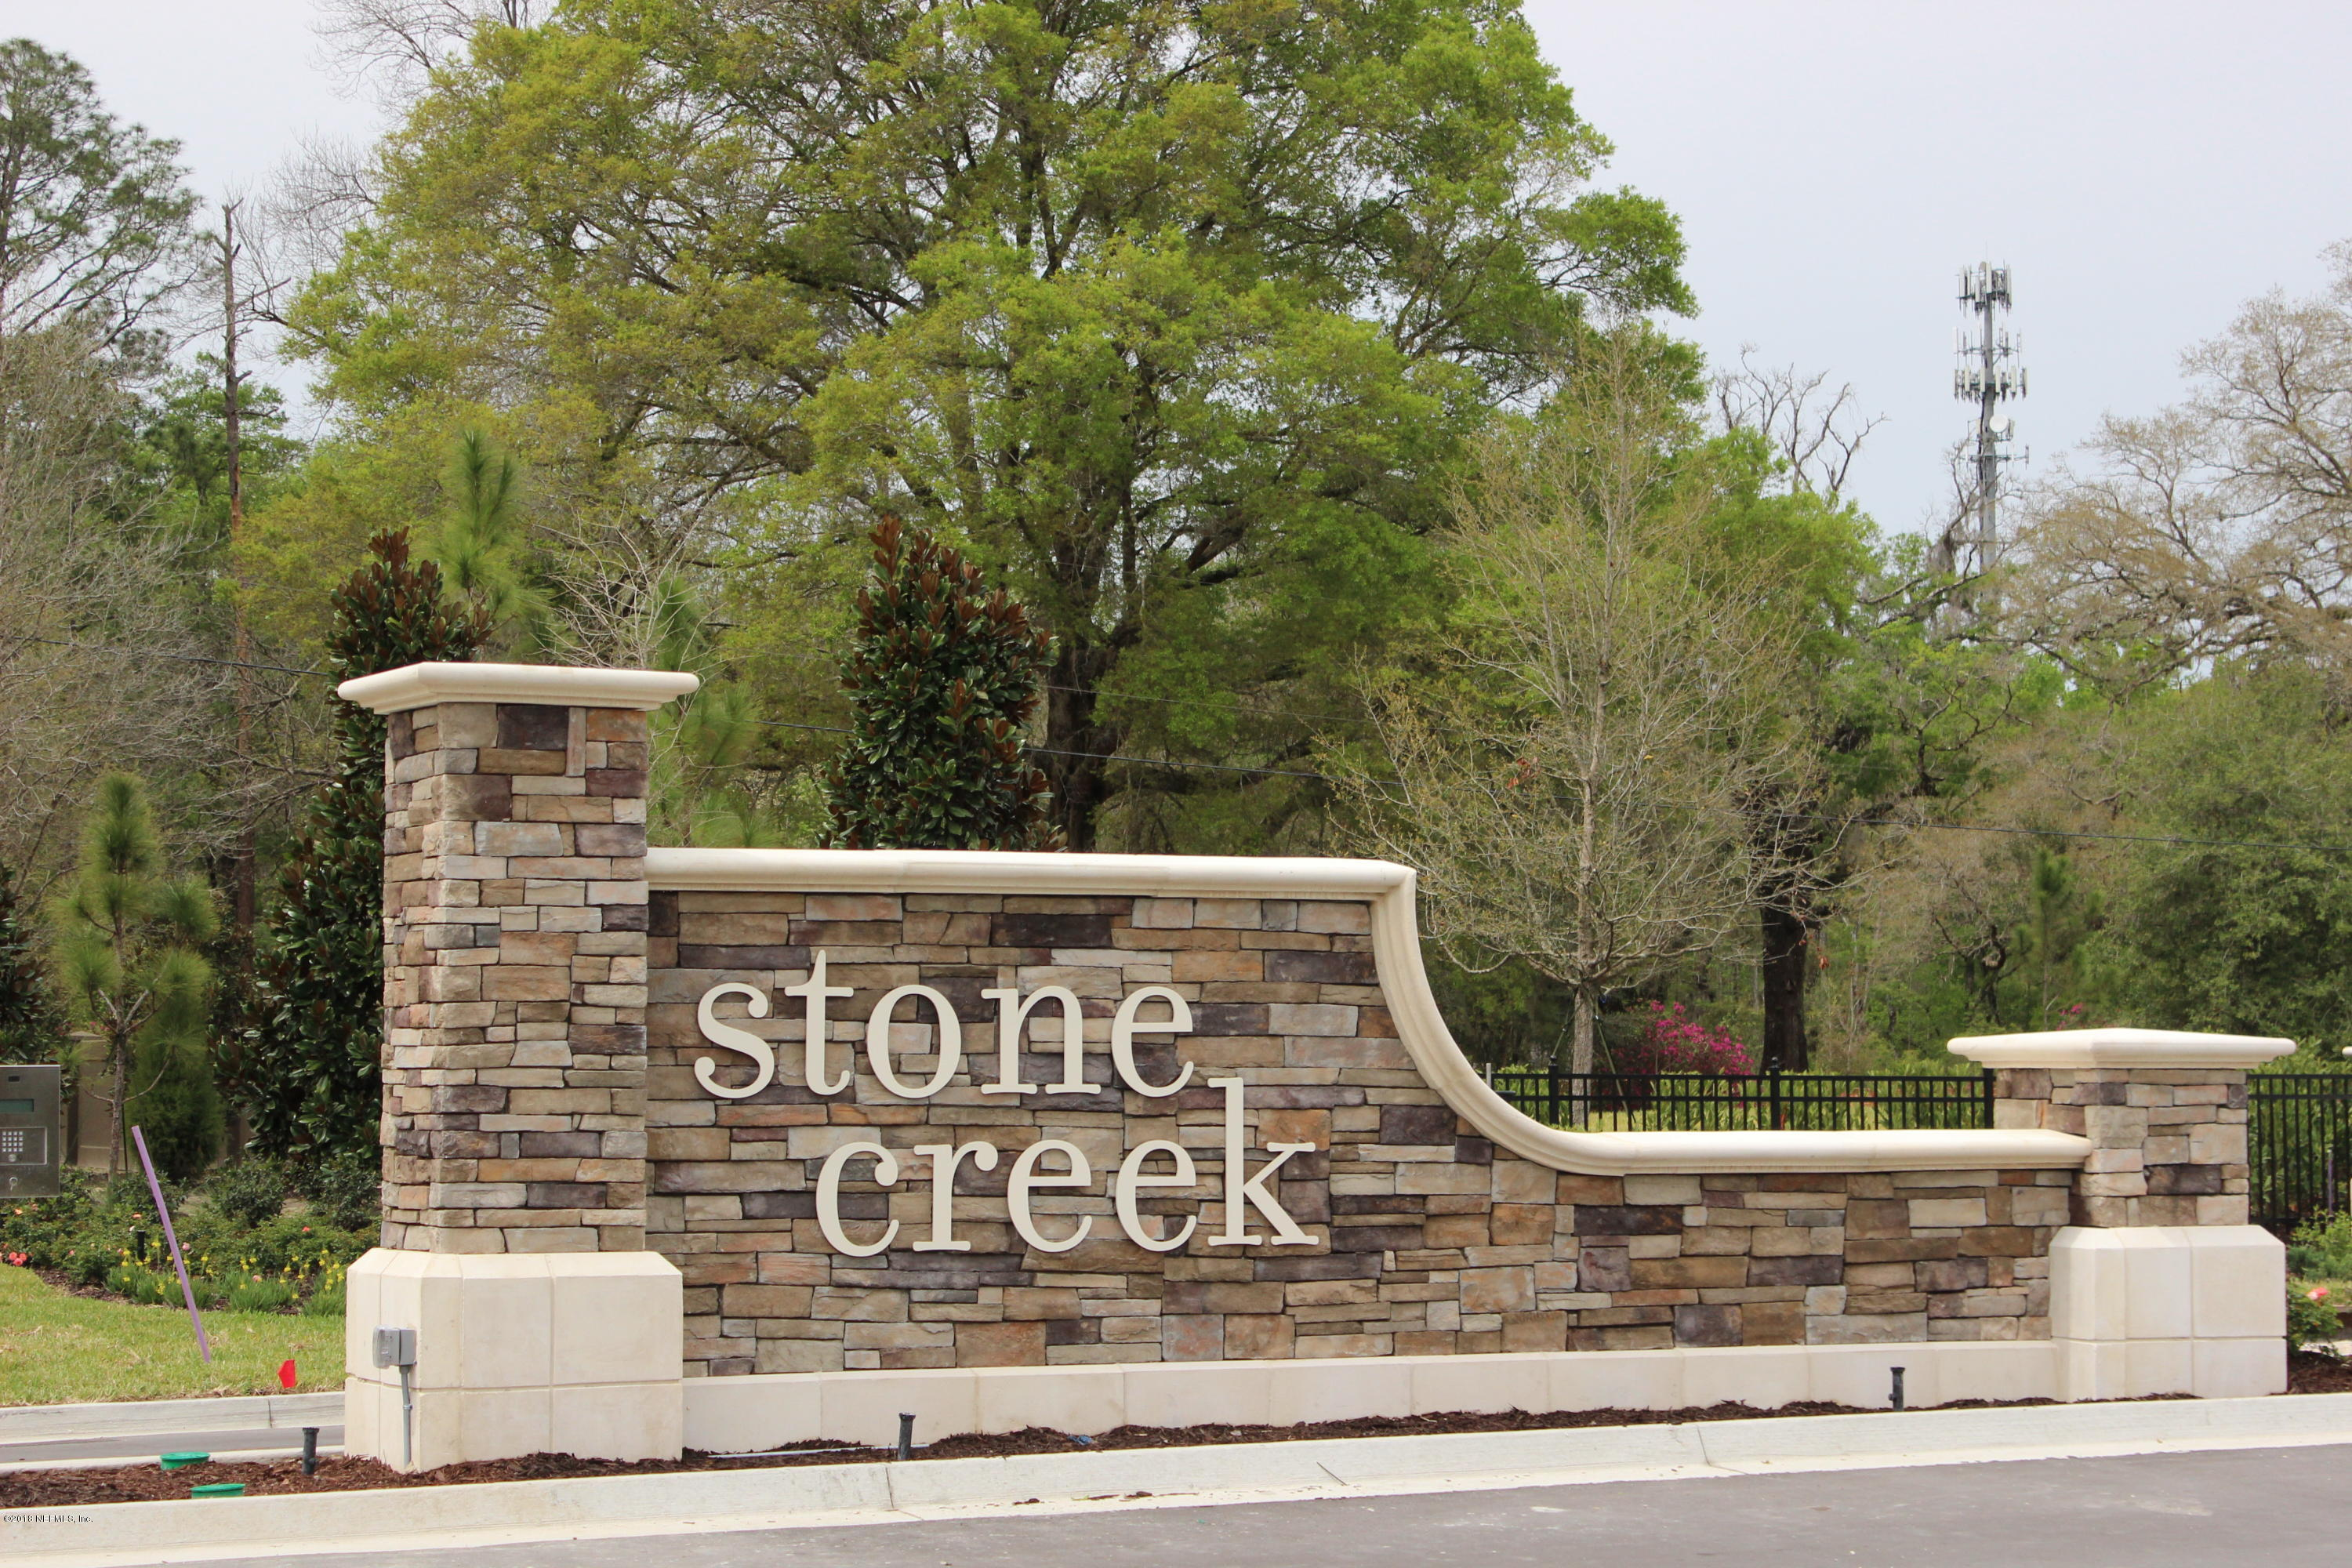 330 STONE CREEK, ST JOHNS, FLORIDA 32259, 5 Bedrooms Bedrooms, ,3 BathroomsBathrooms,Residential - single family,For sale,STONE CREEK,944090